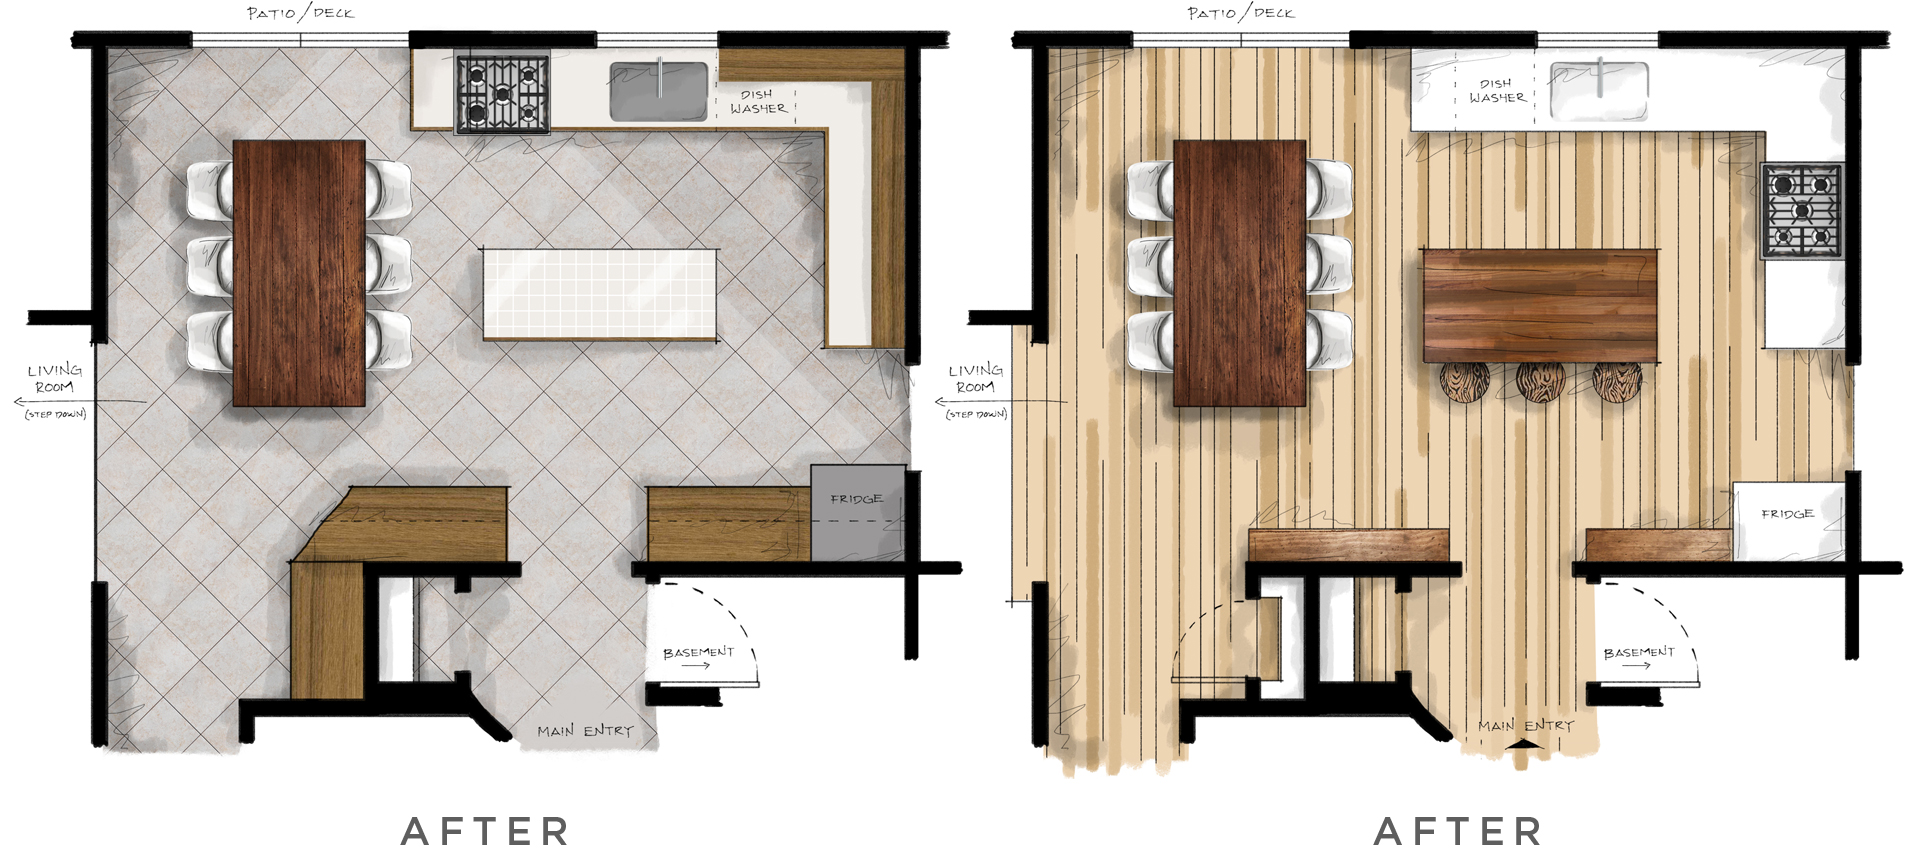 kitchen floor plan before/after